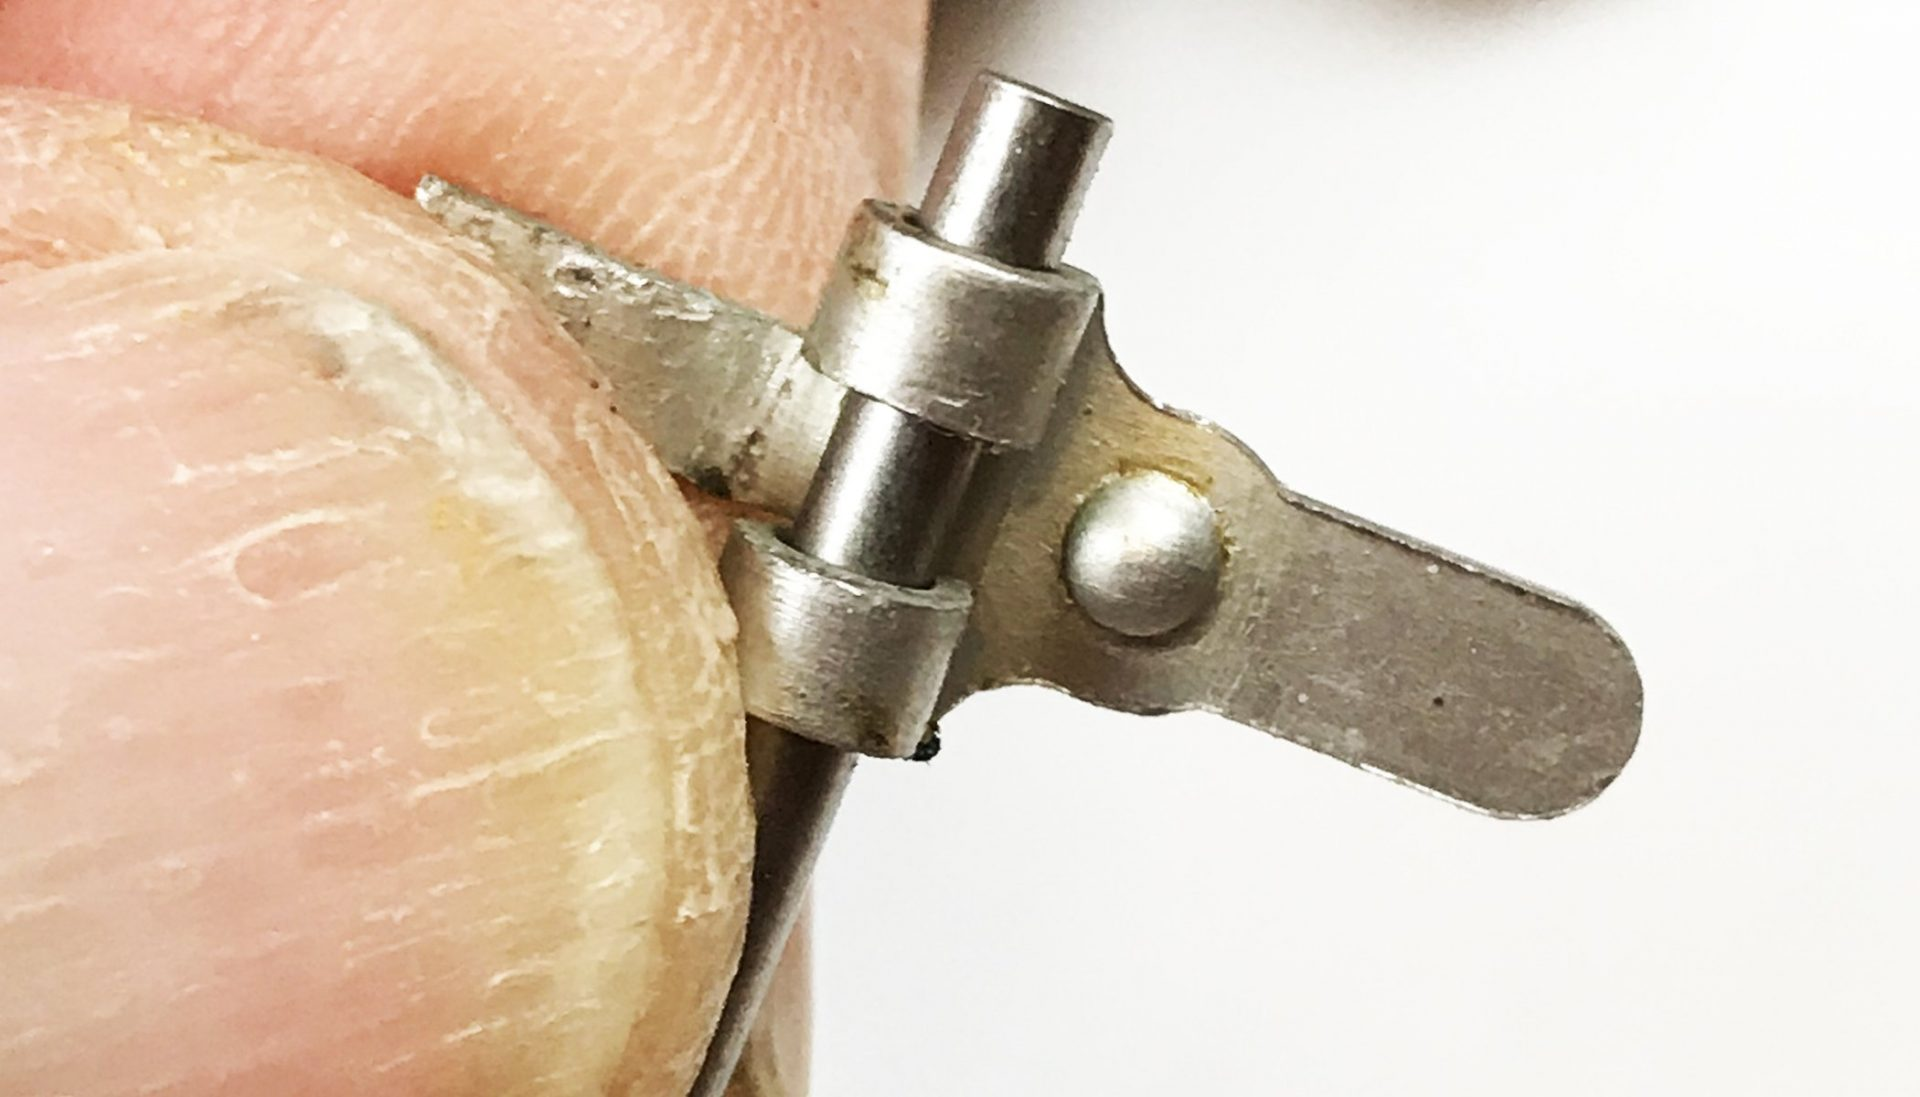 The stamped steel fulcrum lever is pretty fragile, so if you need to bend it to adjust fulcrum lever height (described further on), be gentle. The bottom side has a dome that helps retain the spring. Make sure the fulcrum lever rotates freely on the axle.